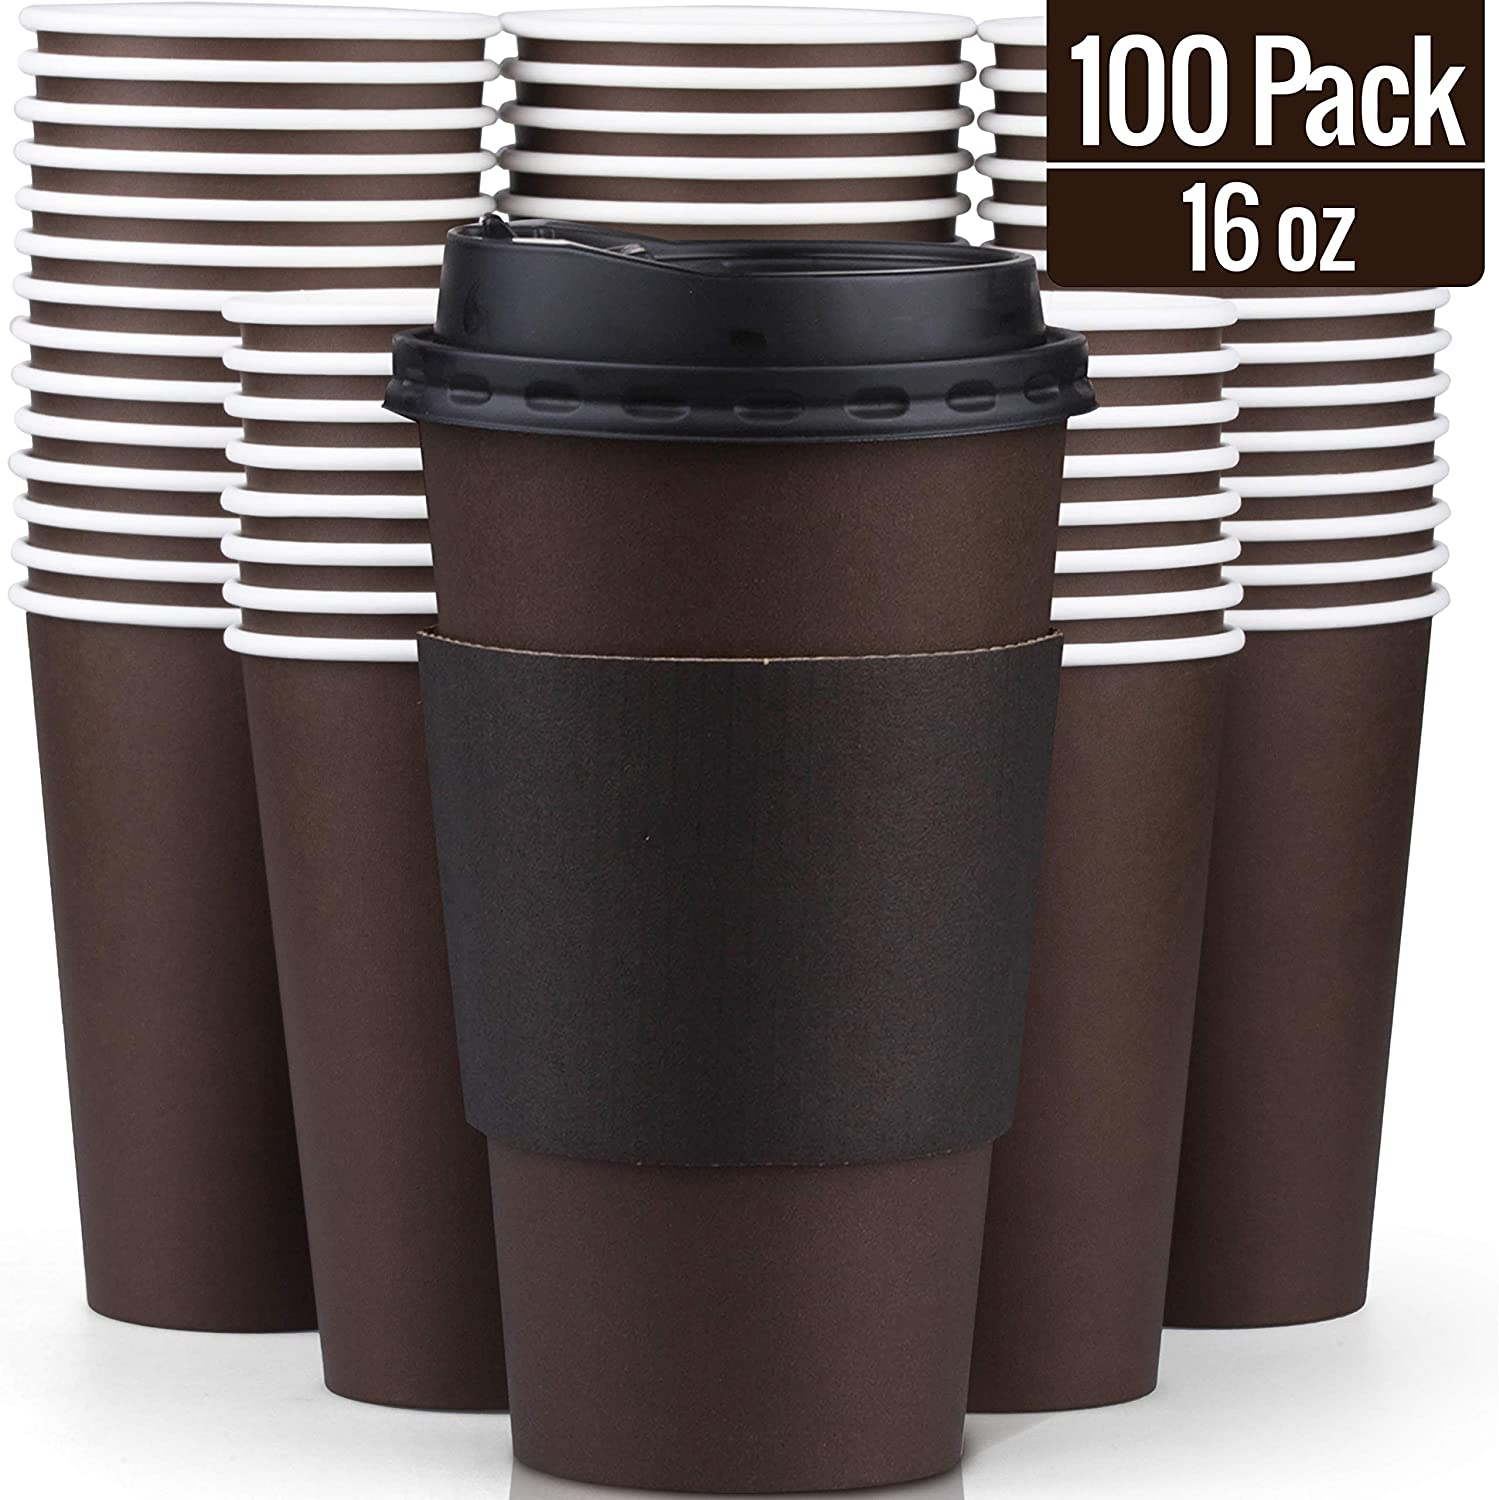 100 Pack Disposable Coffee Cups with Lids 16 oz - Superior Quality 16 Oz Paper Hot Coffee Cups with Sleeves for comfortable Cup holding and tight Lids to prevent leaks